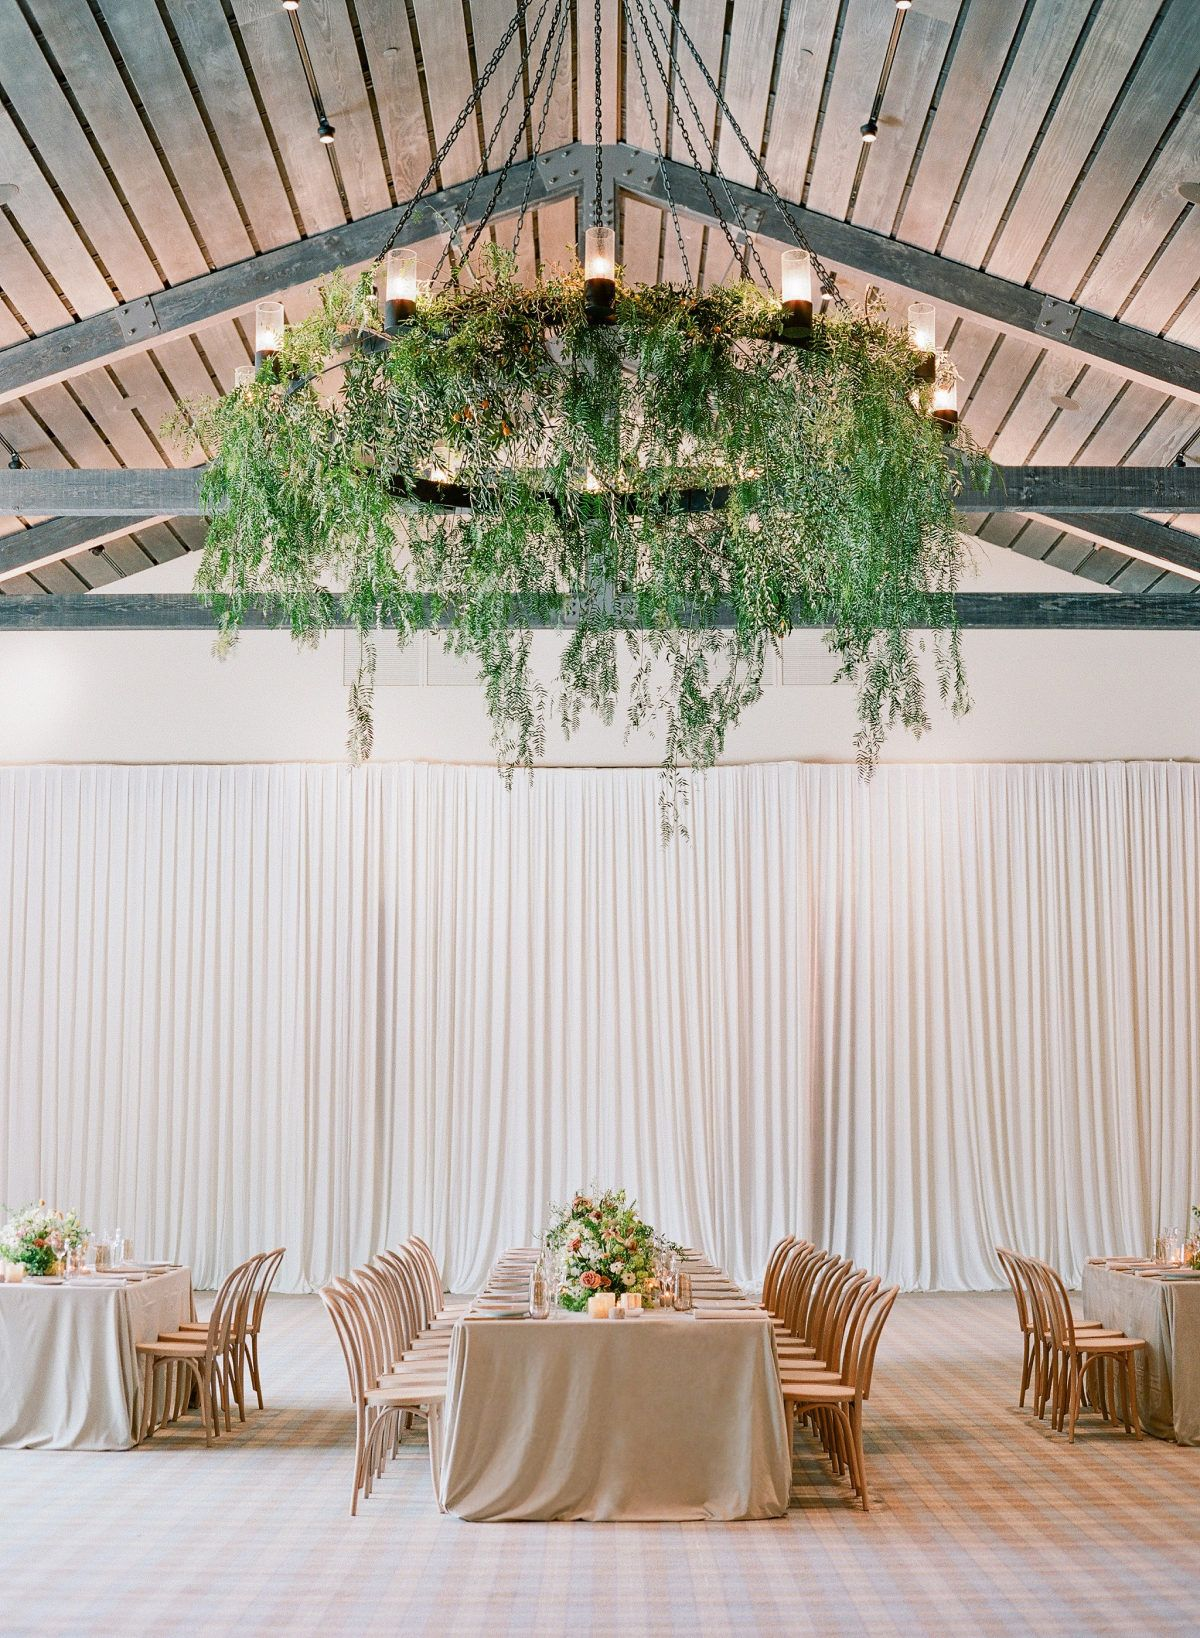 Rustic Chic Wedding Inspiration At The Farmhouse At Ojai Valley